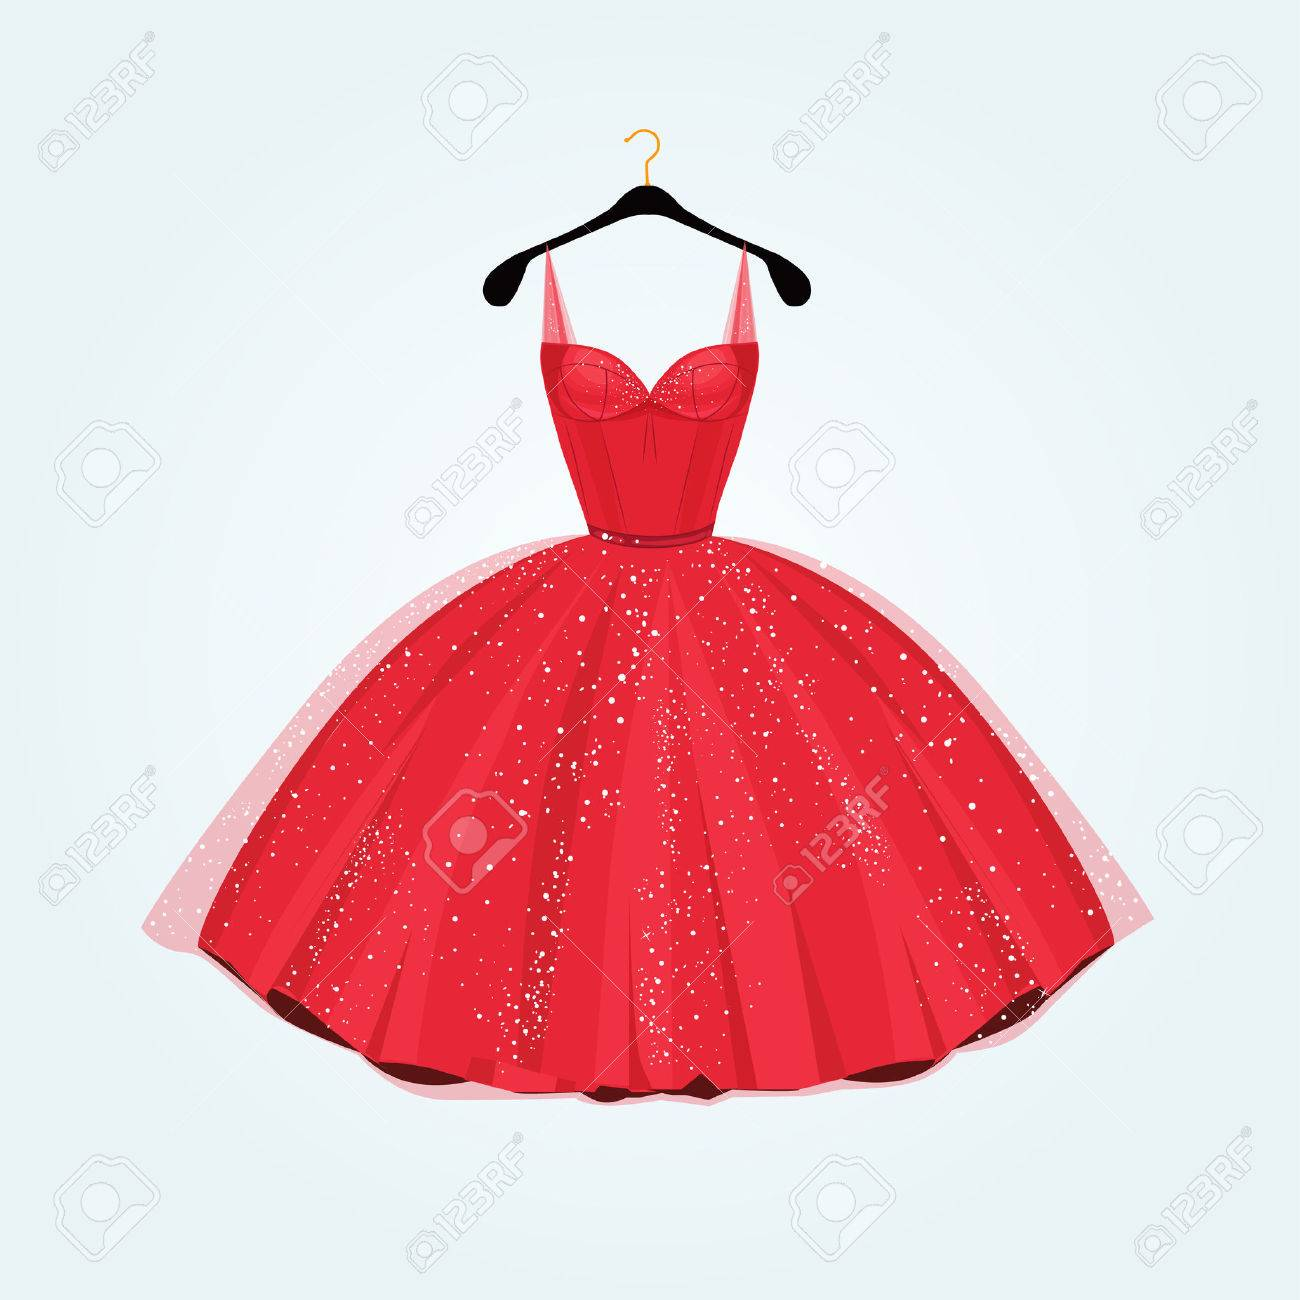 Red gorgeous party dress. Vector illustration - 53118366